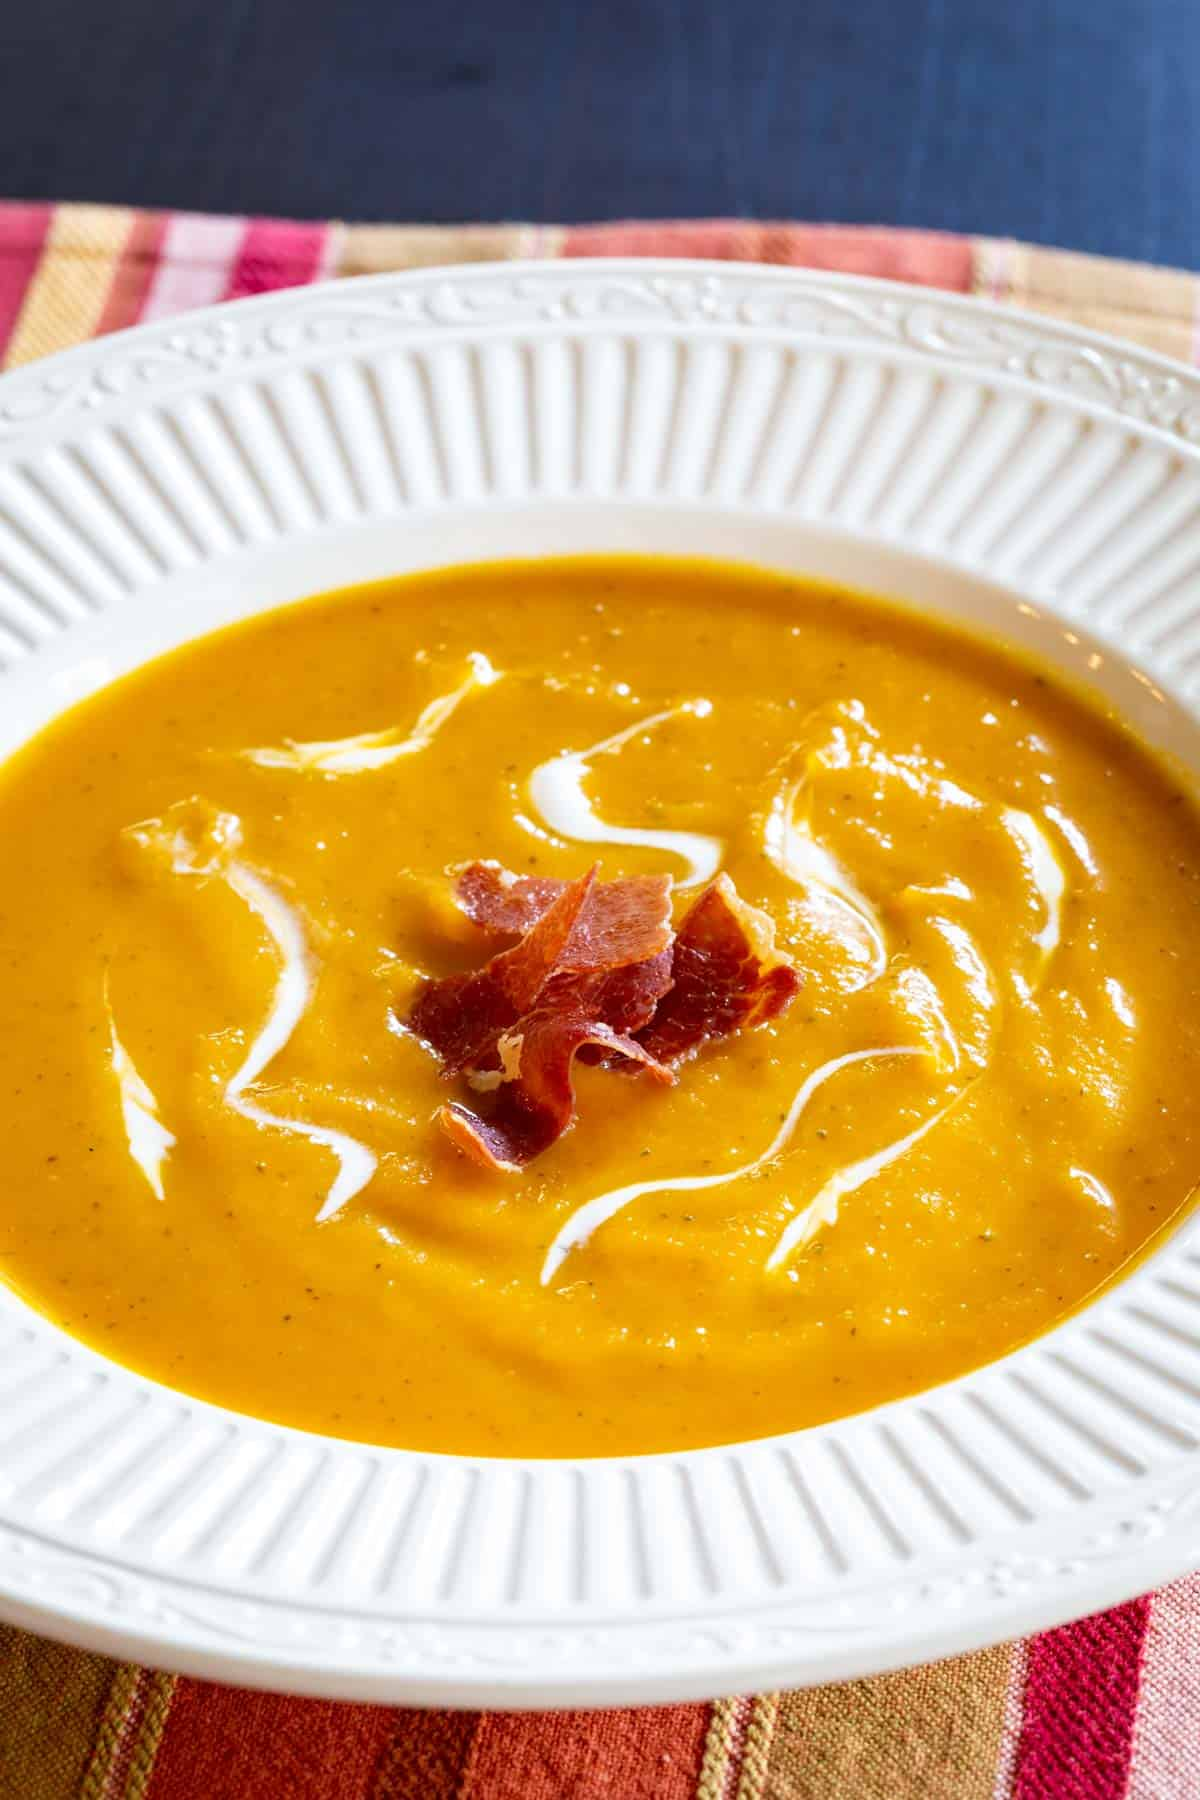 butternut squash soup in a white bowl with a scalloped edge on top of a striped placemat